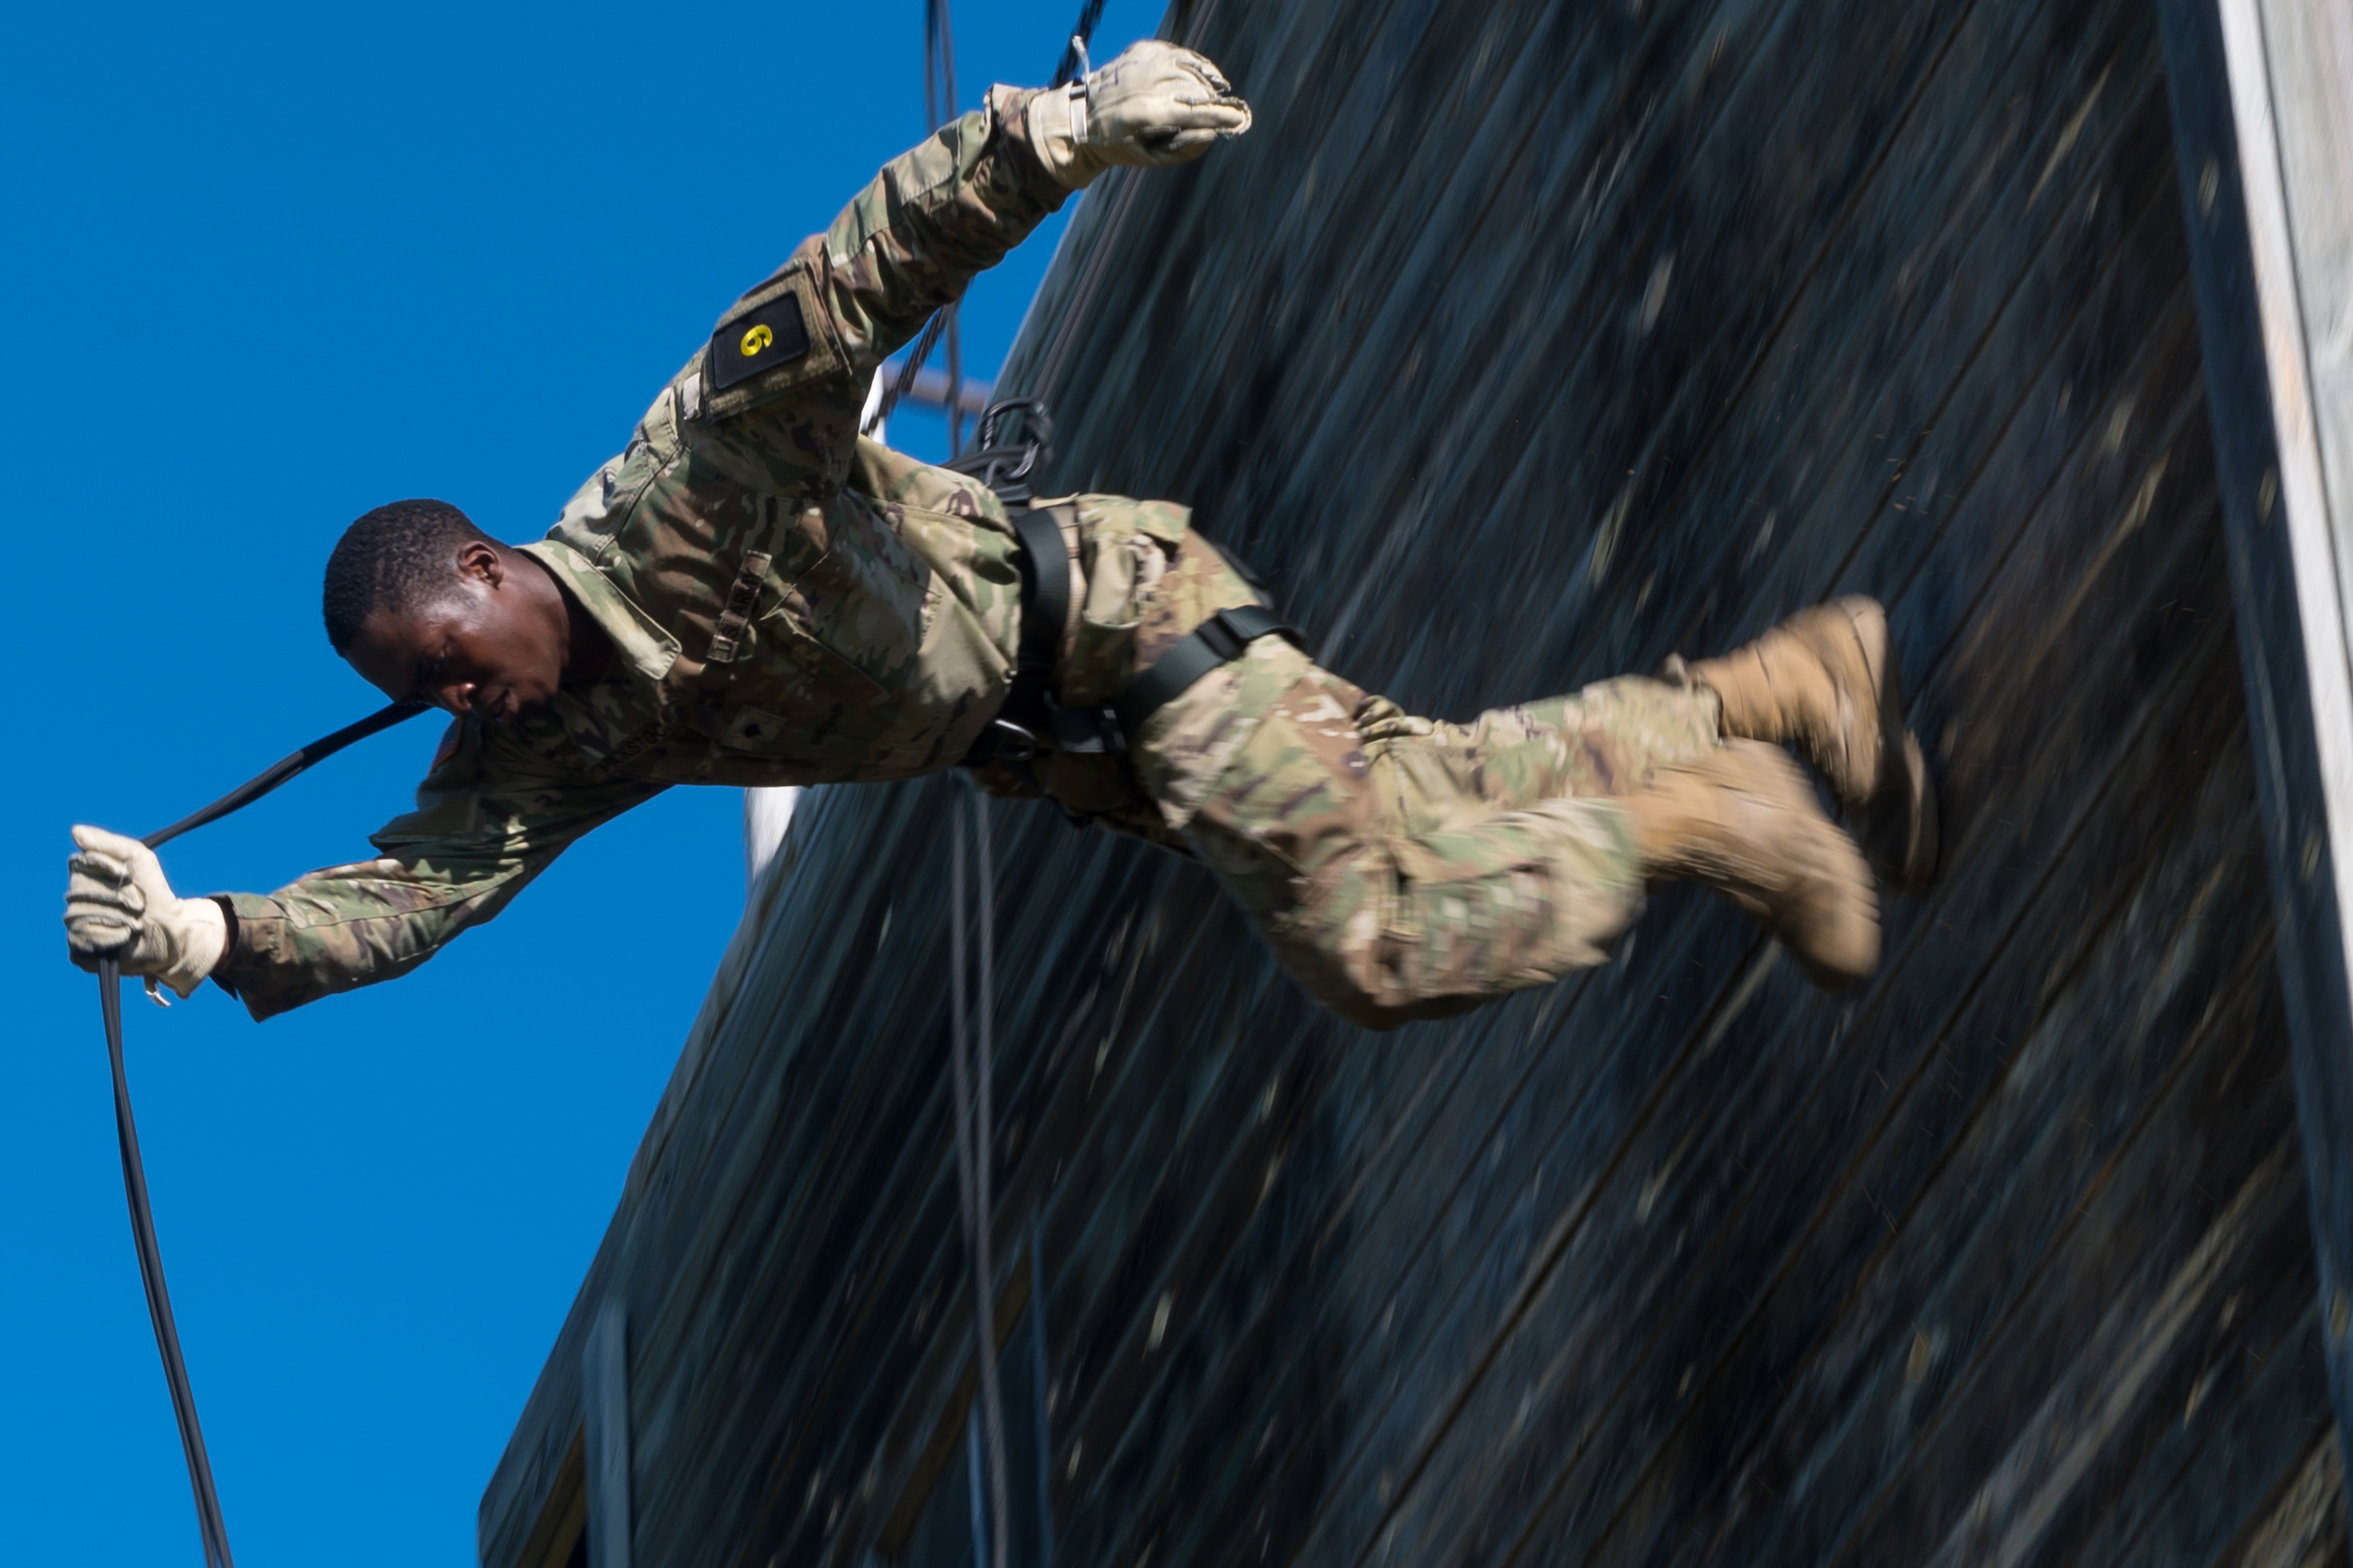 Spc. LeSean Pickstock, 957th Engineer Company, repels down a tower during the North Dakota National Guard Best Warrior Competition at Camp Gilbert C. Grafton, N.D., on Aug. 16, 2020. The competition challenges participants on multiple aspects of Soldier tasks. (Spc. Kristin L. Berg/Army National Guard)